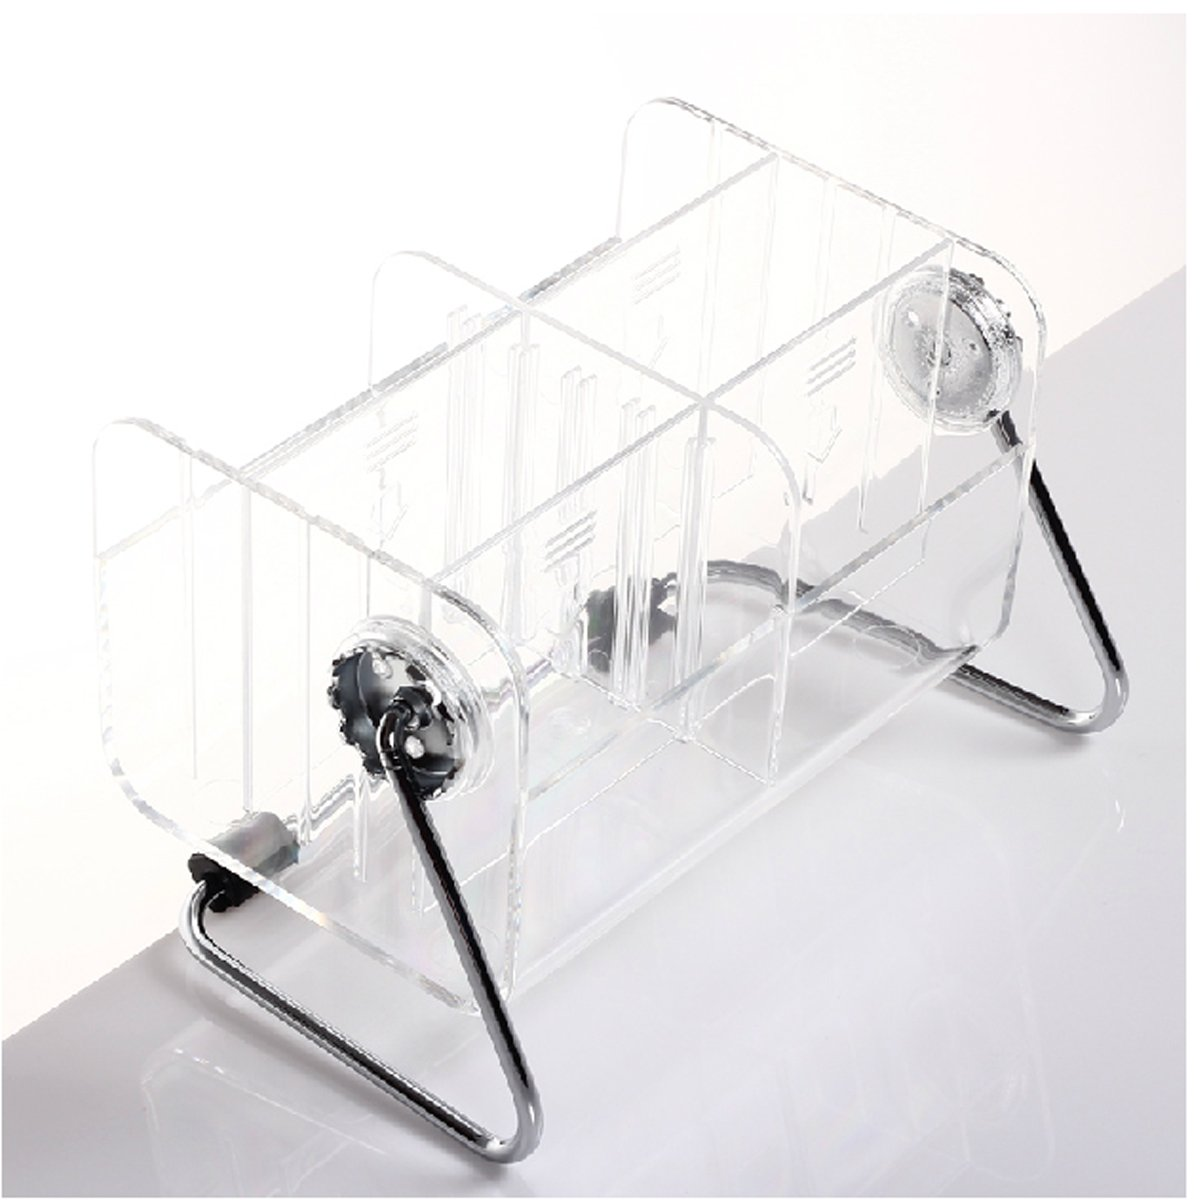 Remote Control Holder For Coffee Table Amazoncom Hqdeal Clear Desktop Remote Control Holder Organizer